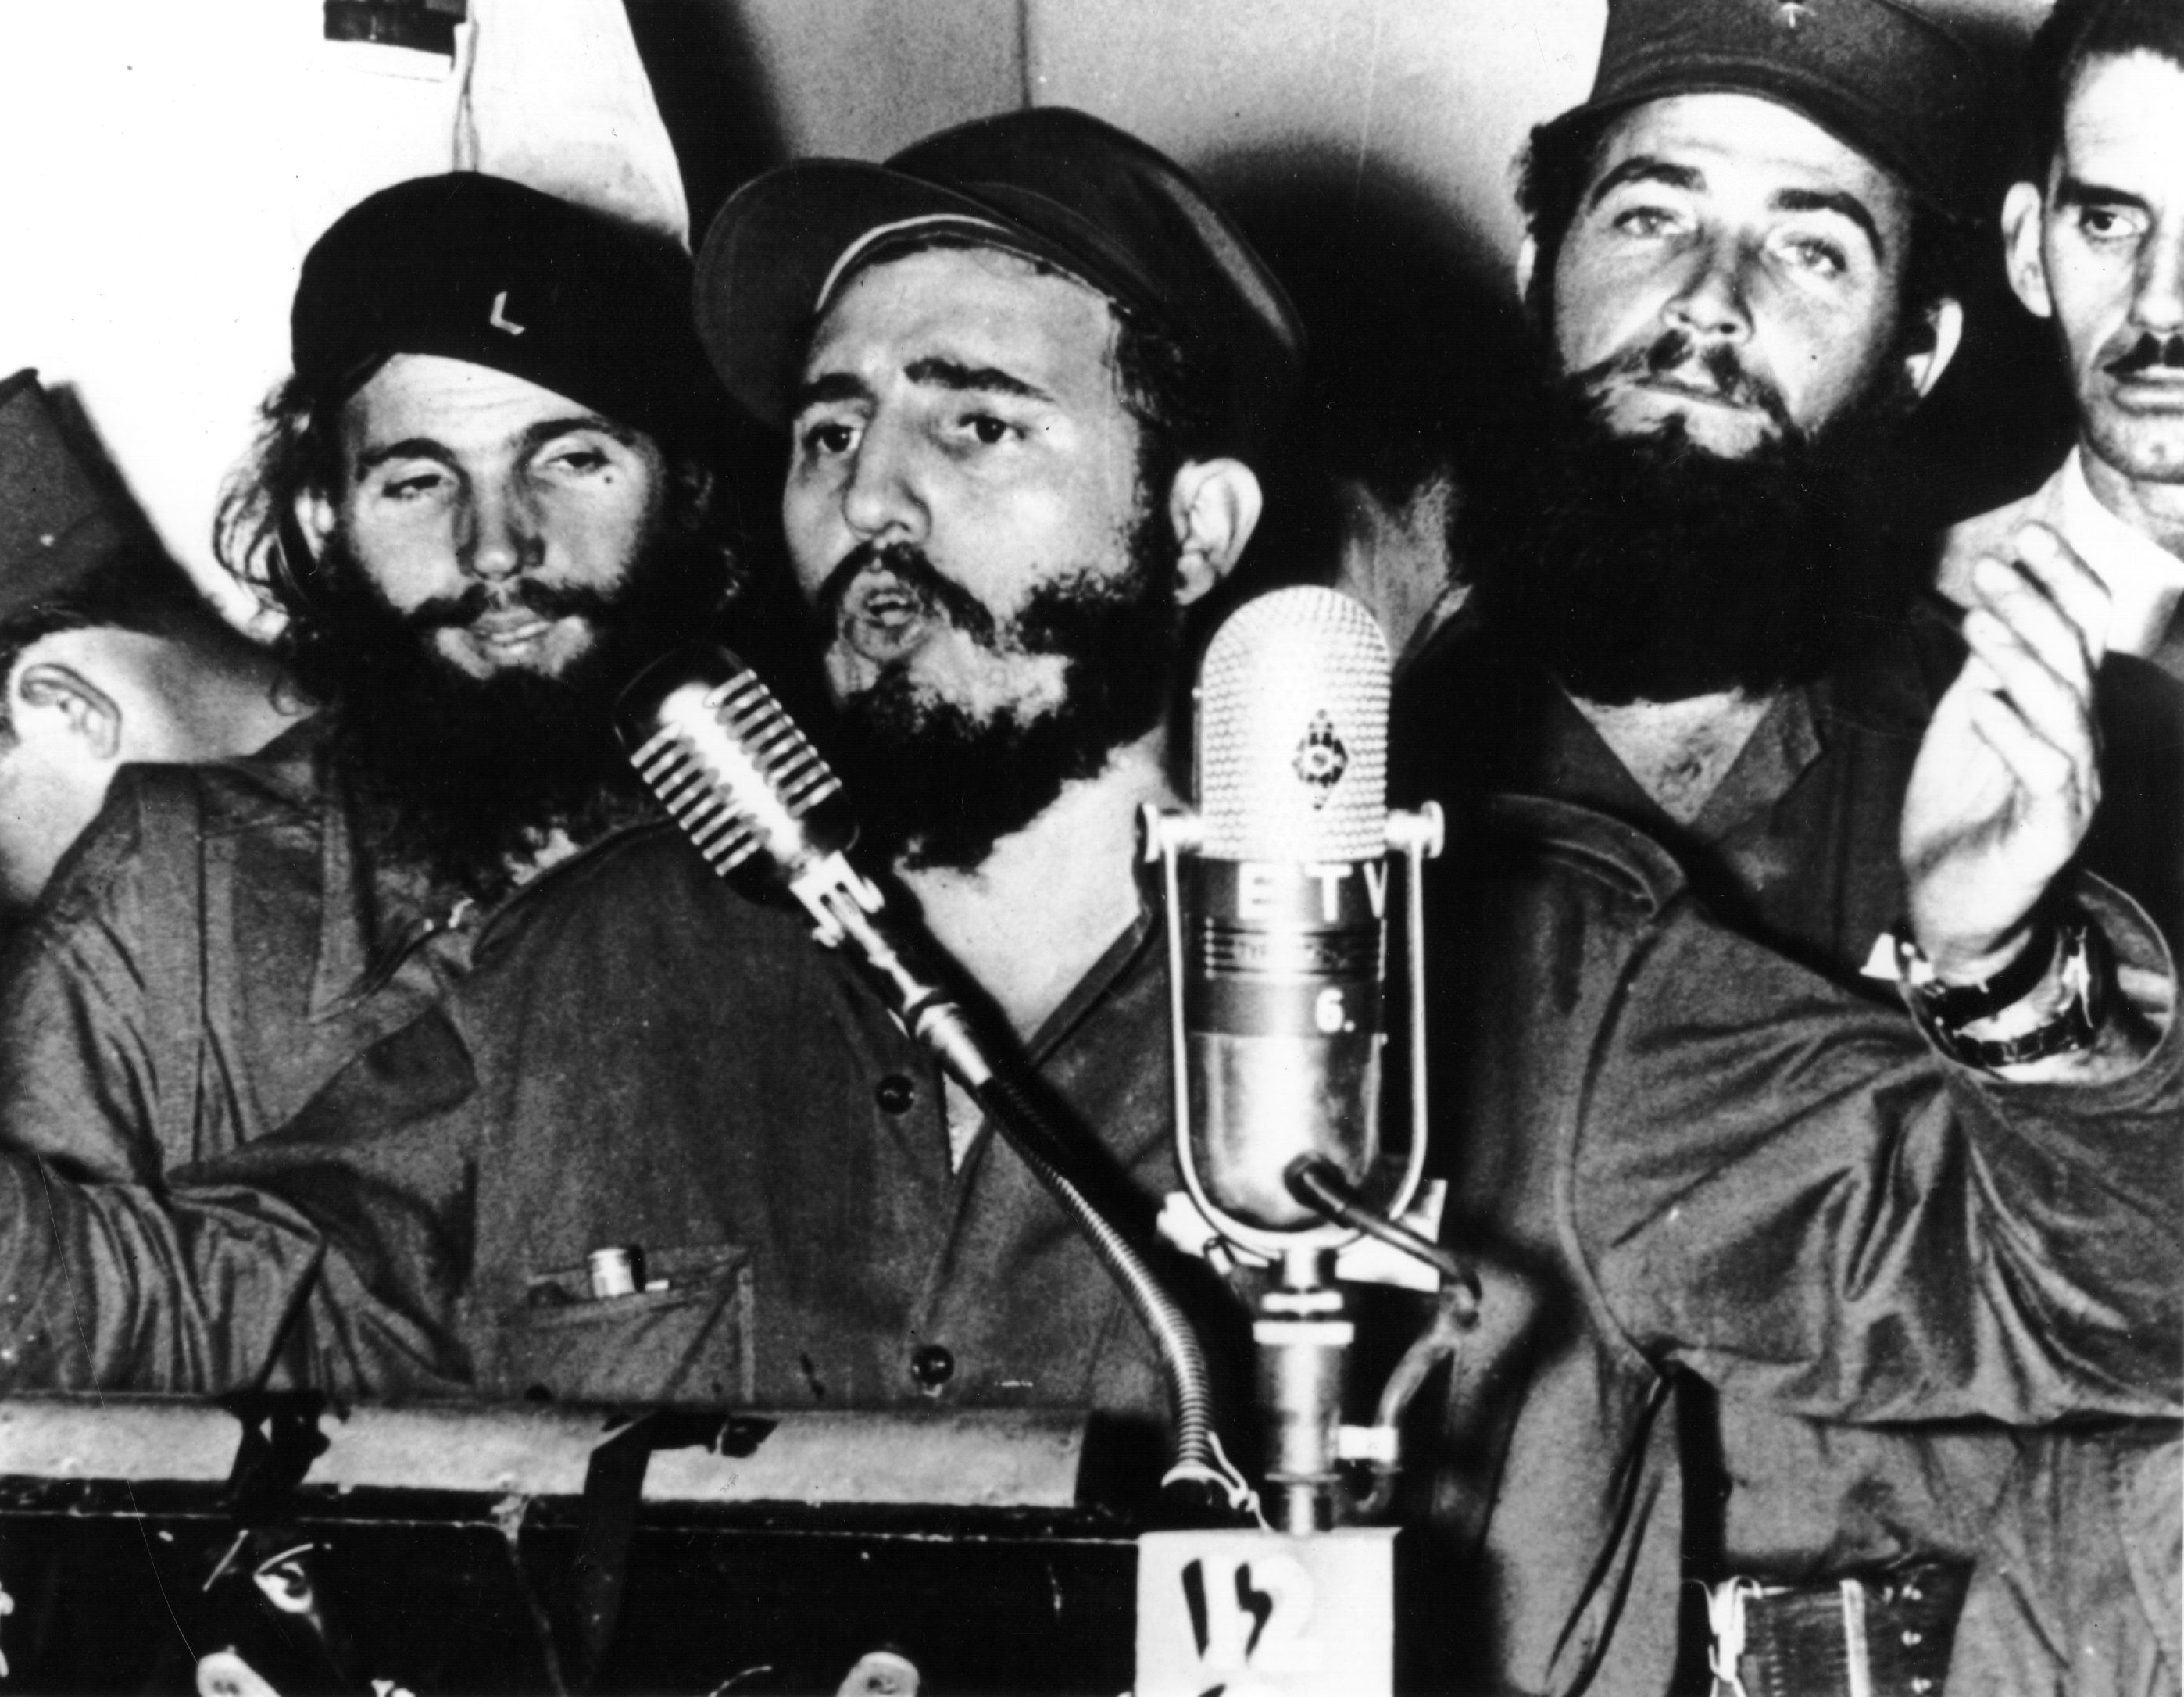 fidel castro biography of the leader of fidel castro s controversial communist